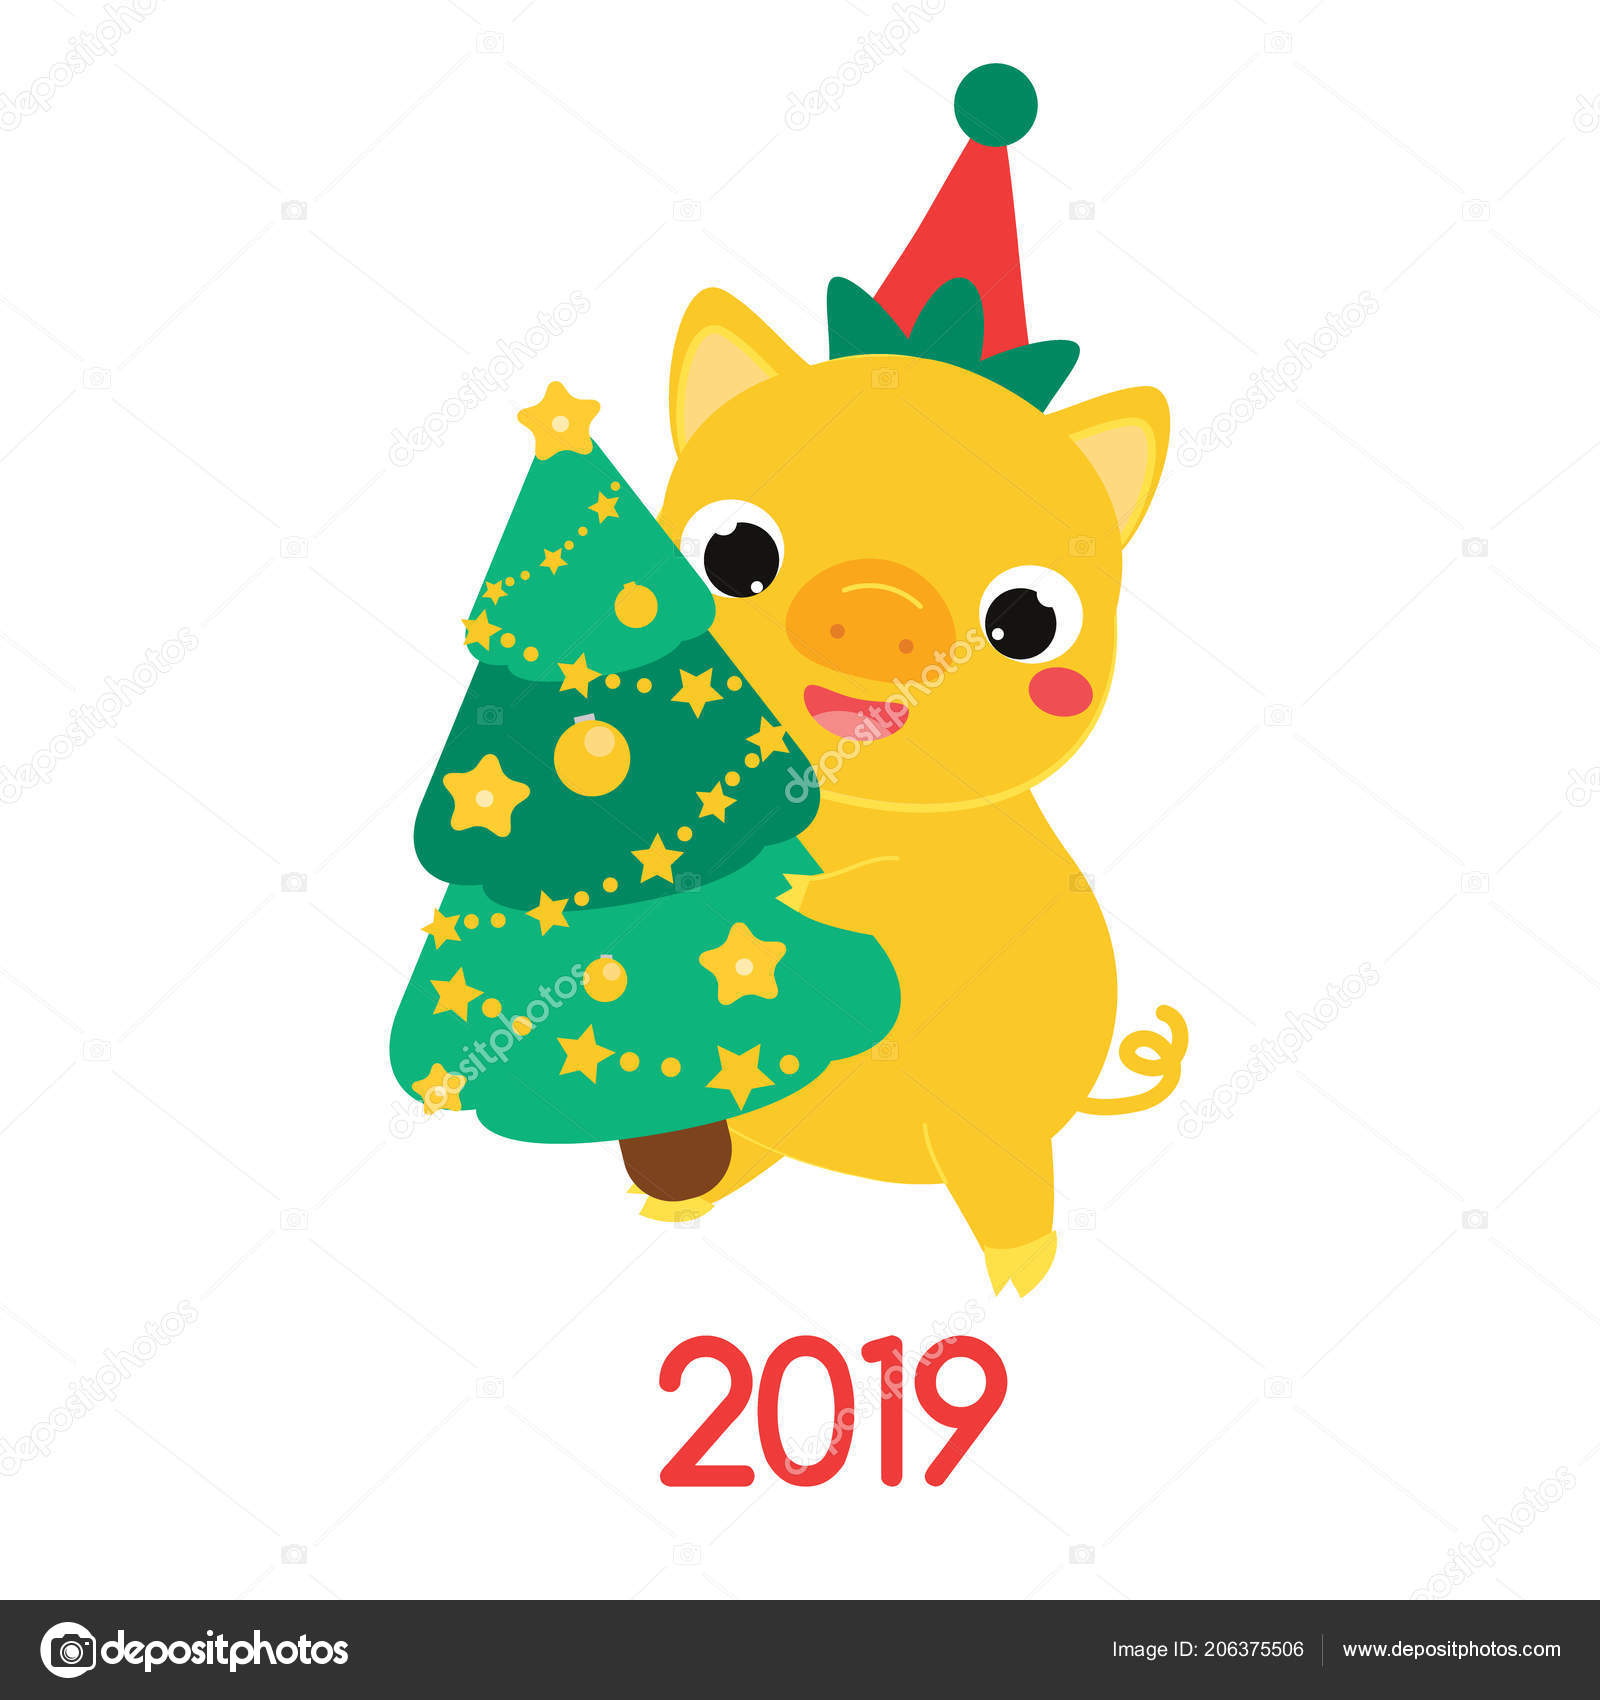 Cartoon Yellow Pig Symbol 2019 Party Holding New Year Spruce Stock